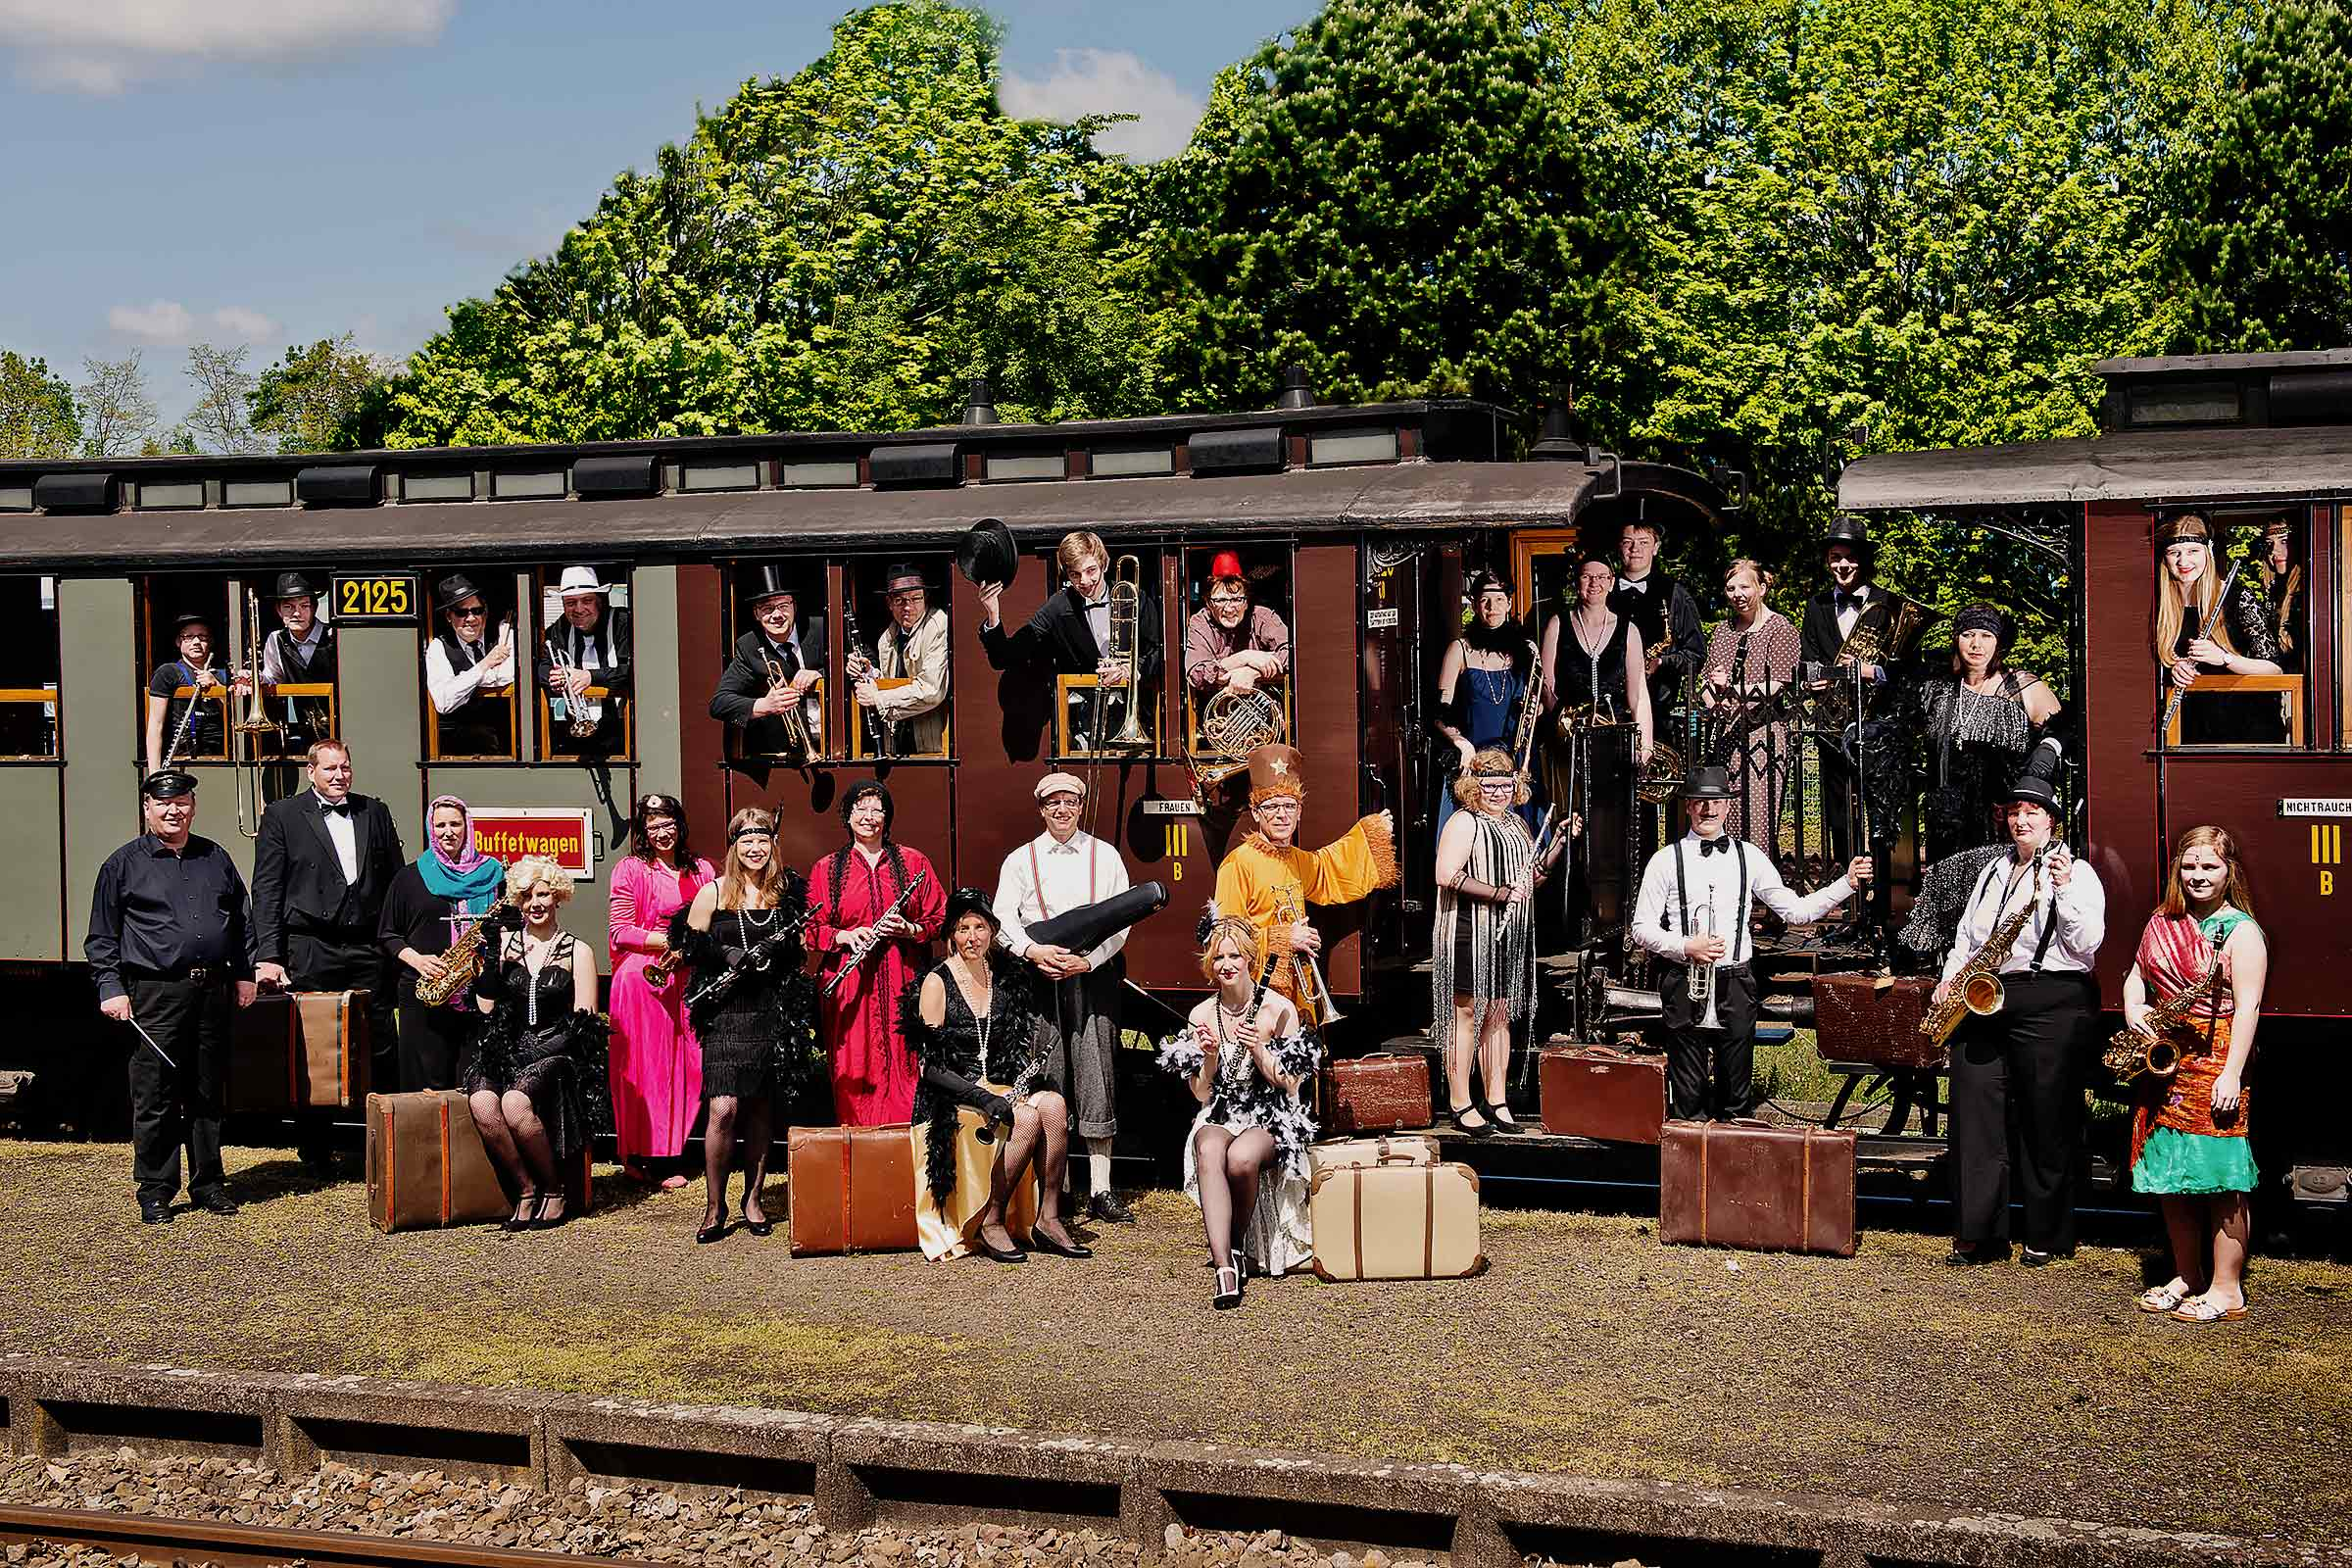 Gruppenshooting Orientexpress